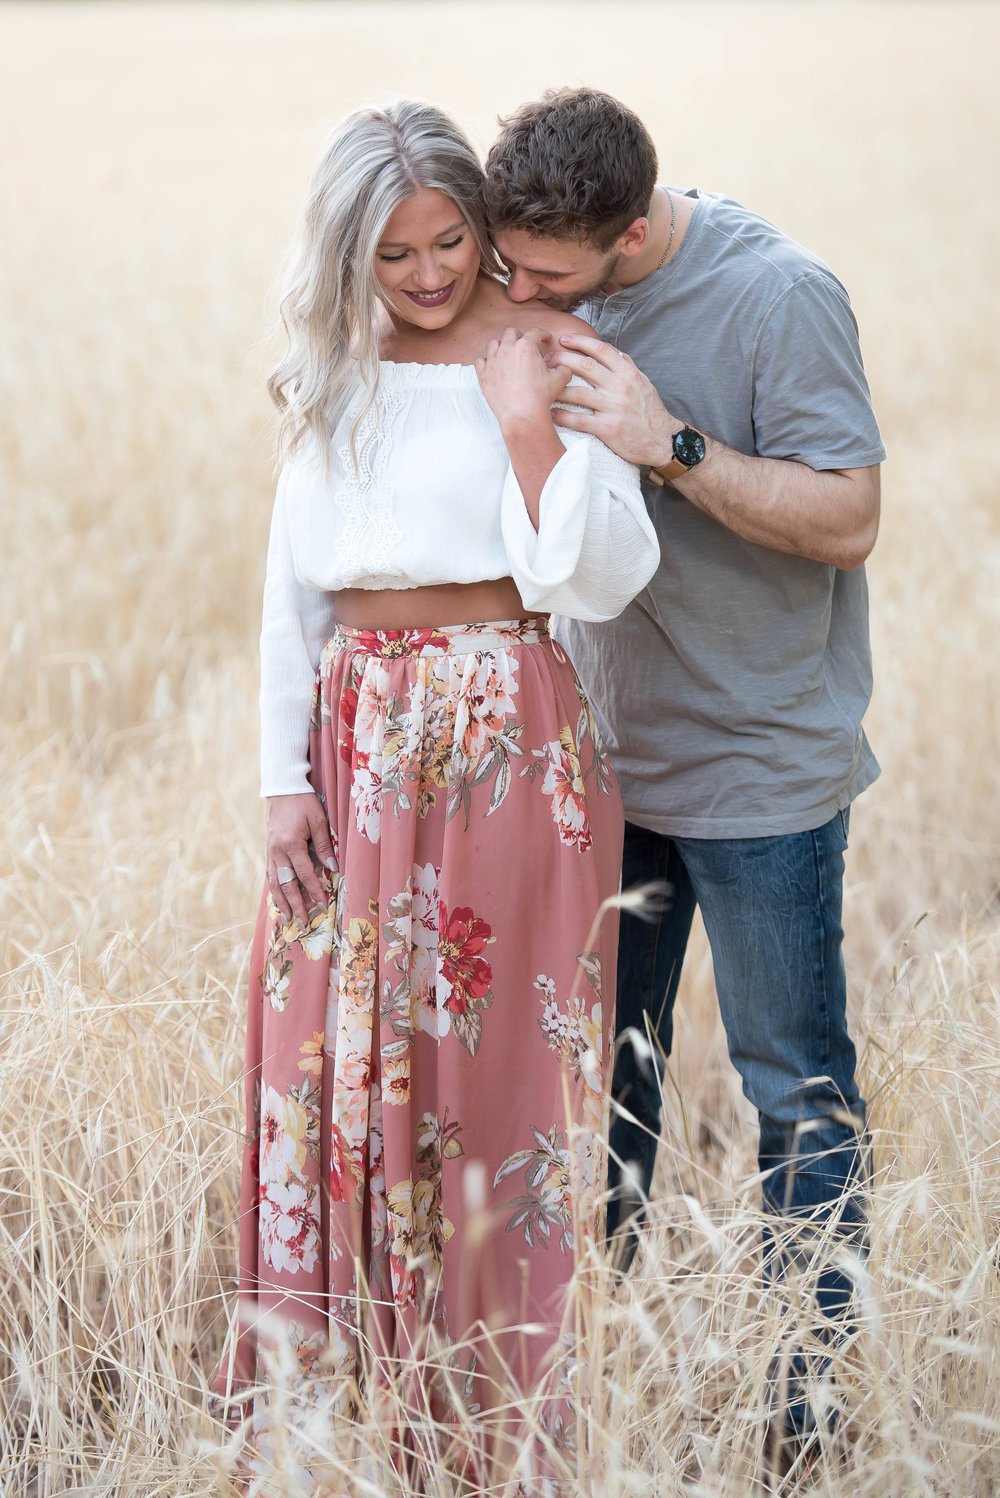 Couple Session - Fitness Couples - Tall Grass Field - Engagement Portrait Ideas - Engagement Session Ideas - Couple Session Ideas - Spring Picture Ideas-1.jpg